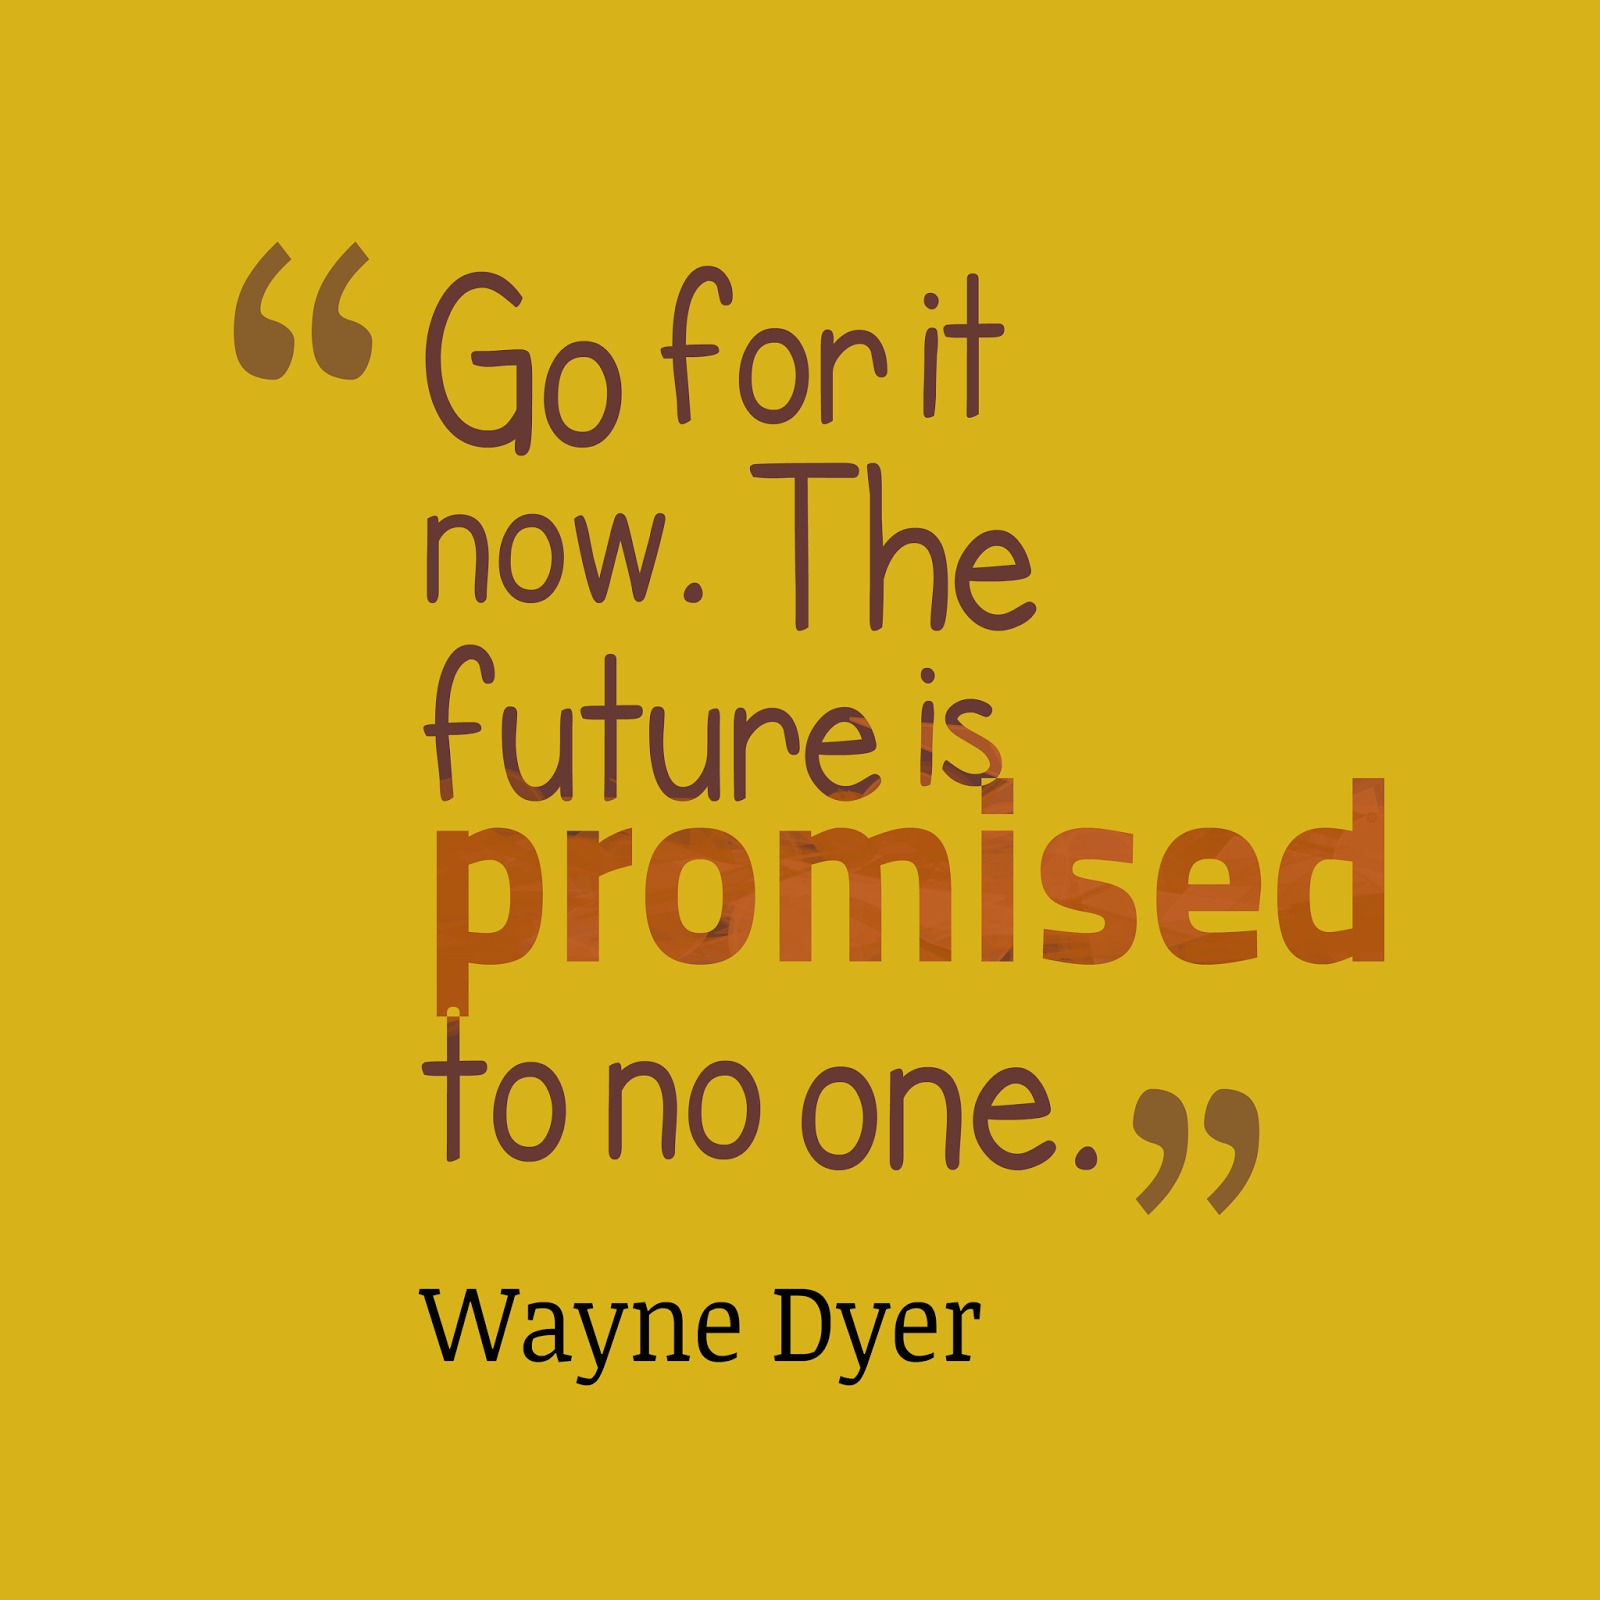 Top 10 Wayne Dyer S Motivational Quotes And Life Lessons A Place